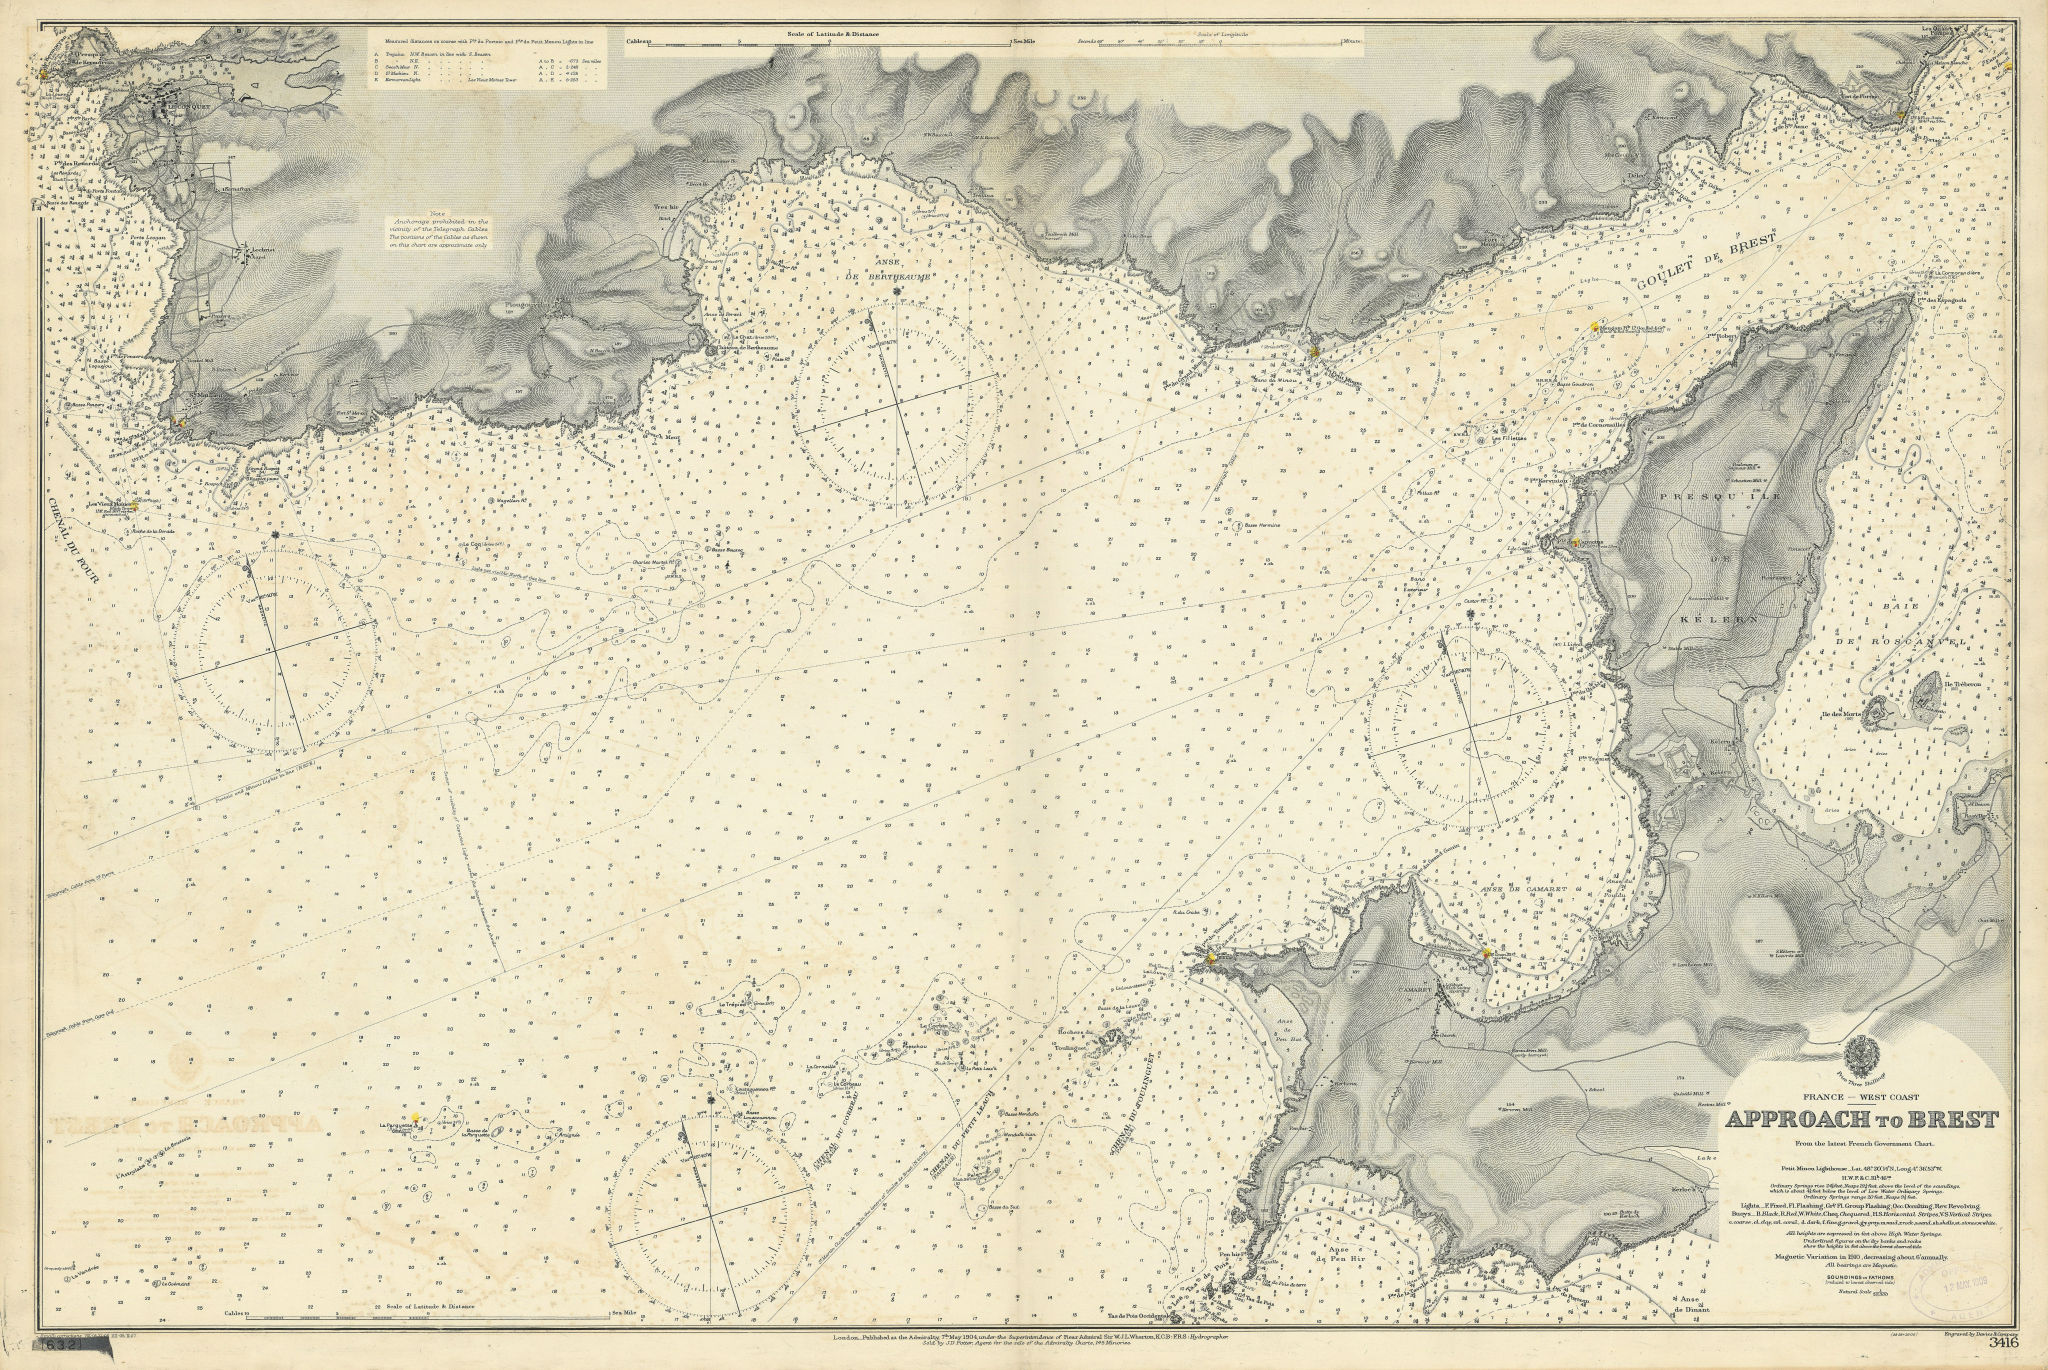 Brest approaches. Finistère coast, France. ADMIRALTY sea chart 1904 (1907) map